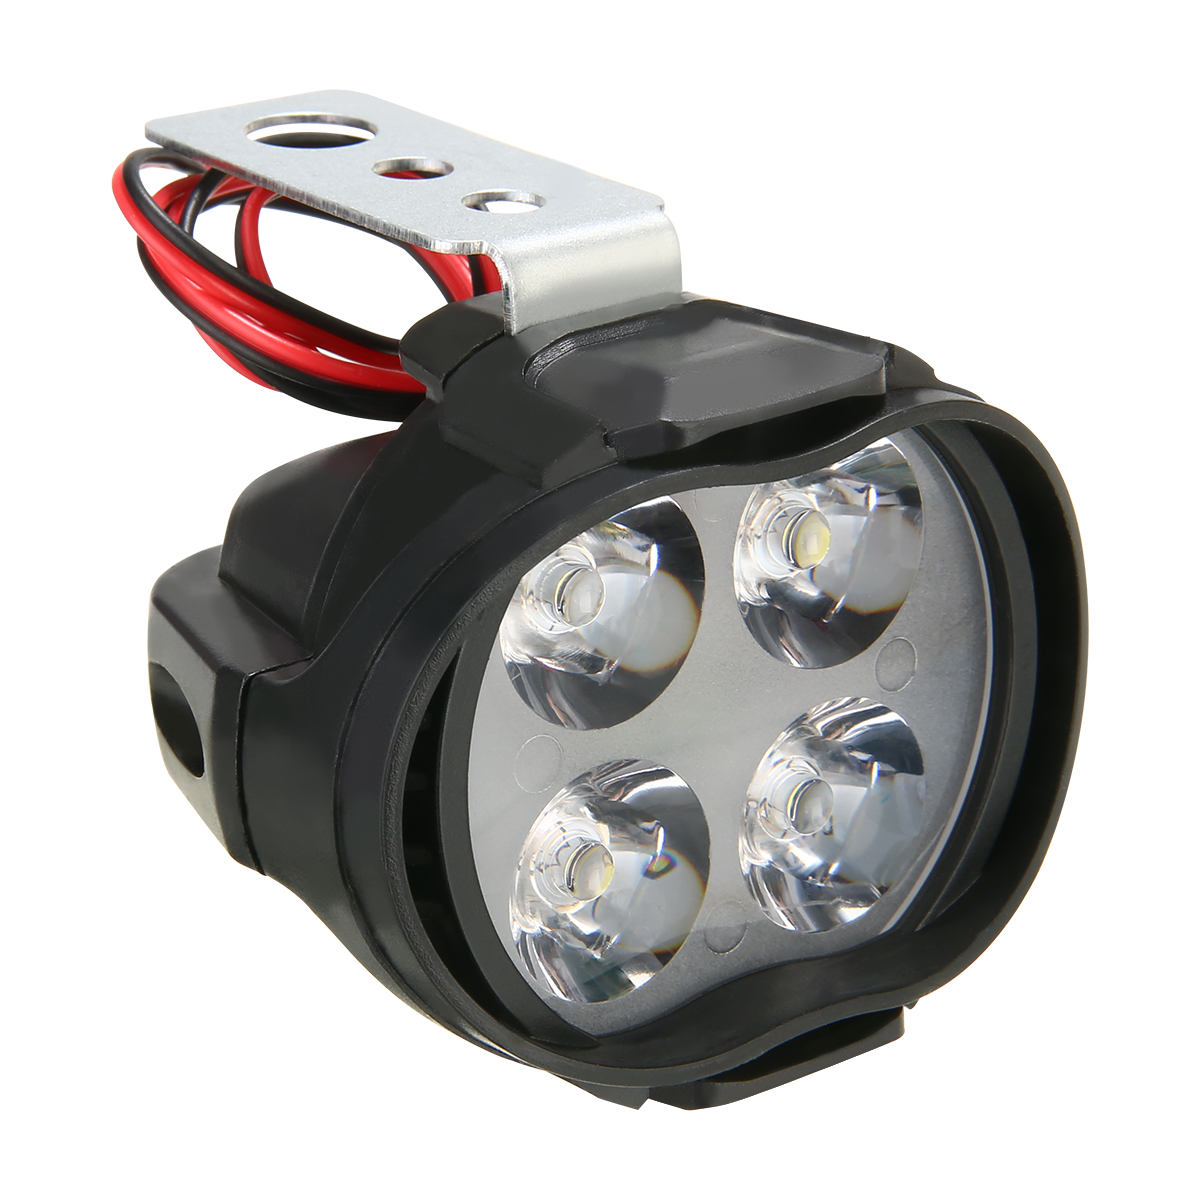 1 pcs 12W Waterproof Motorcycle E-bike LED Headlight Spot Fog Light White Motorbike Working Spot Light